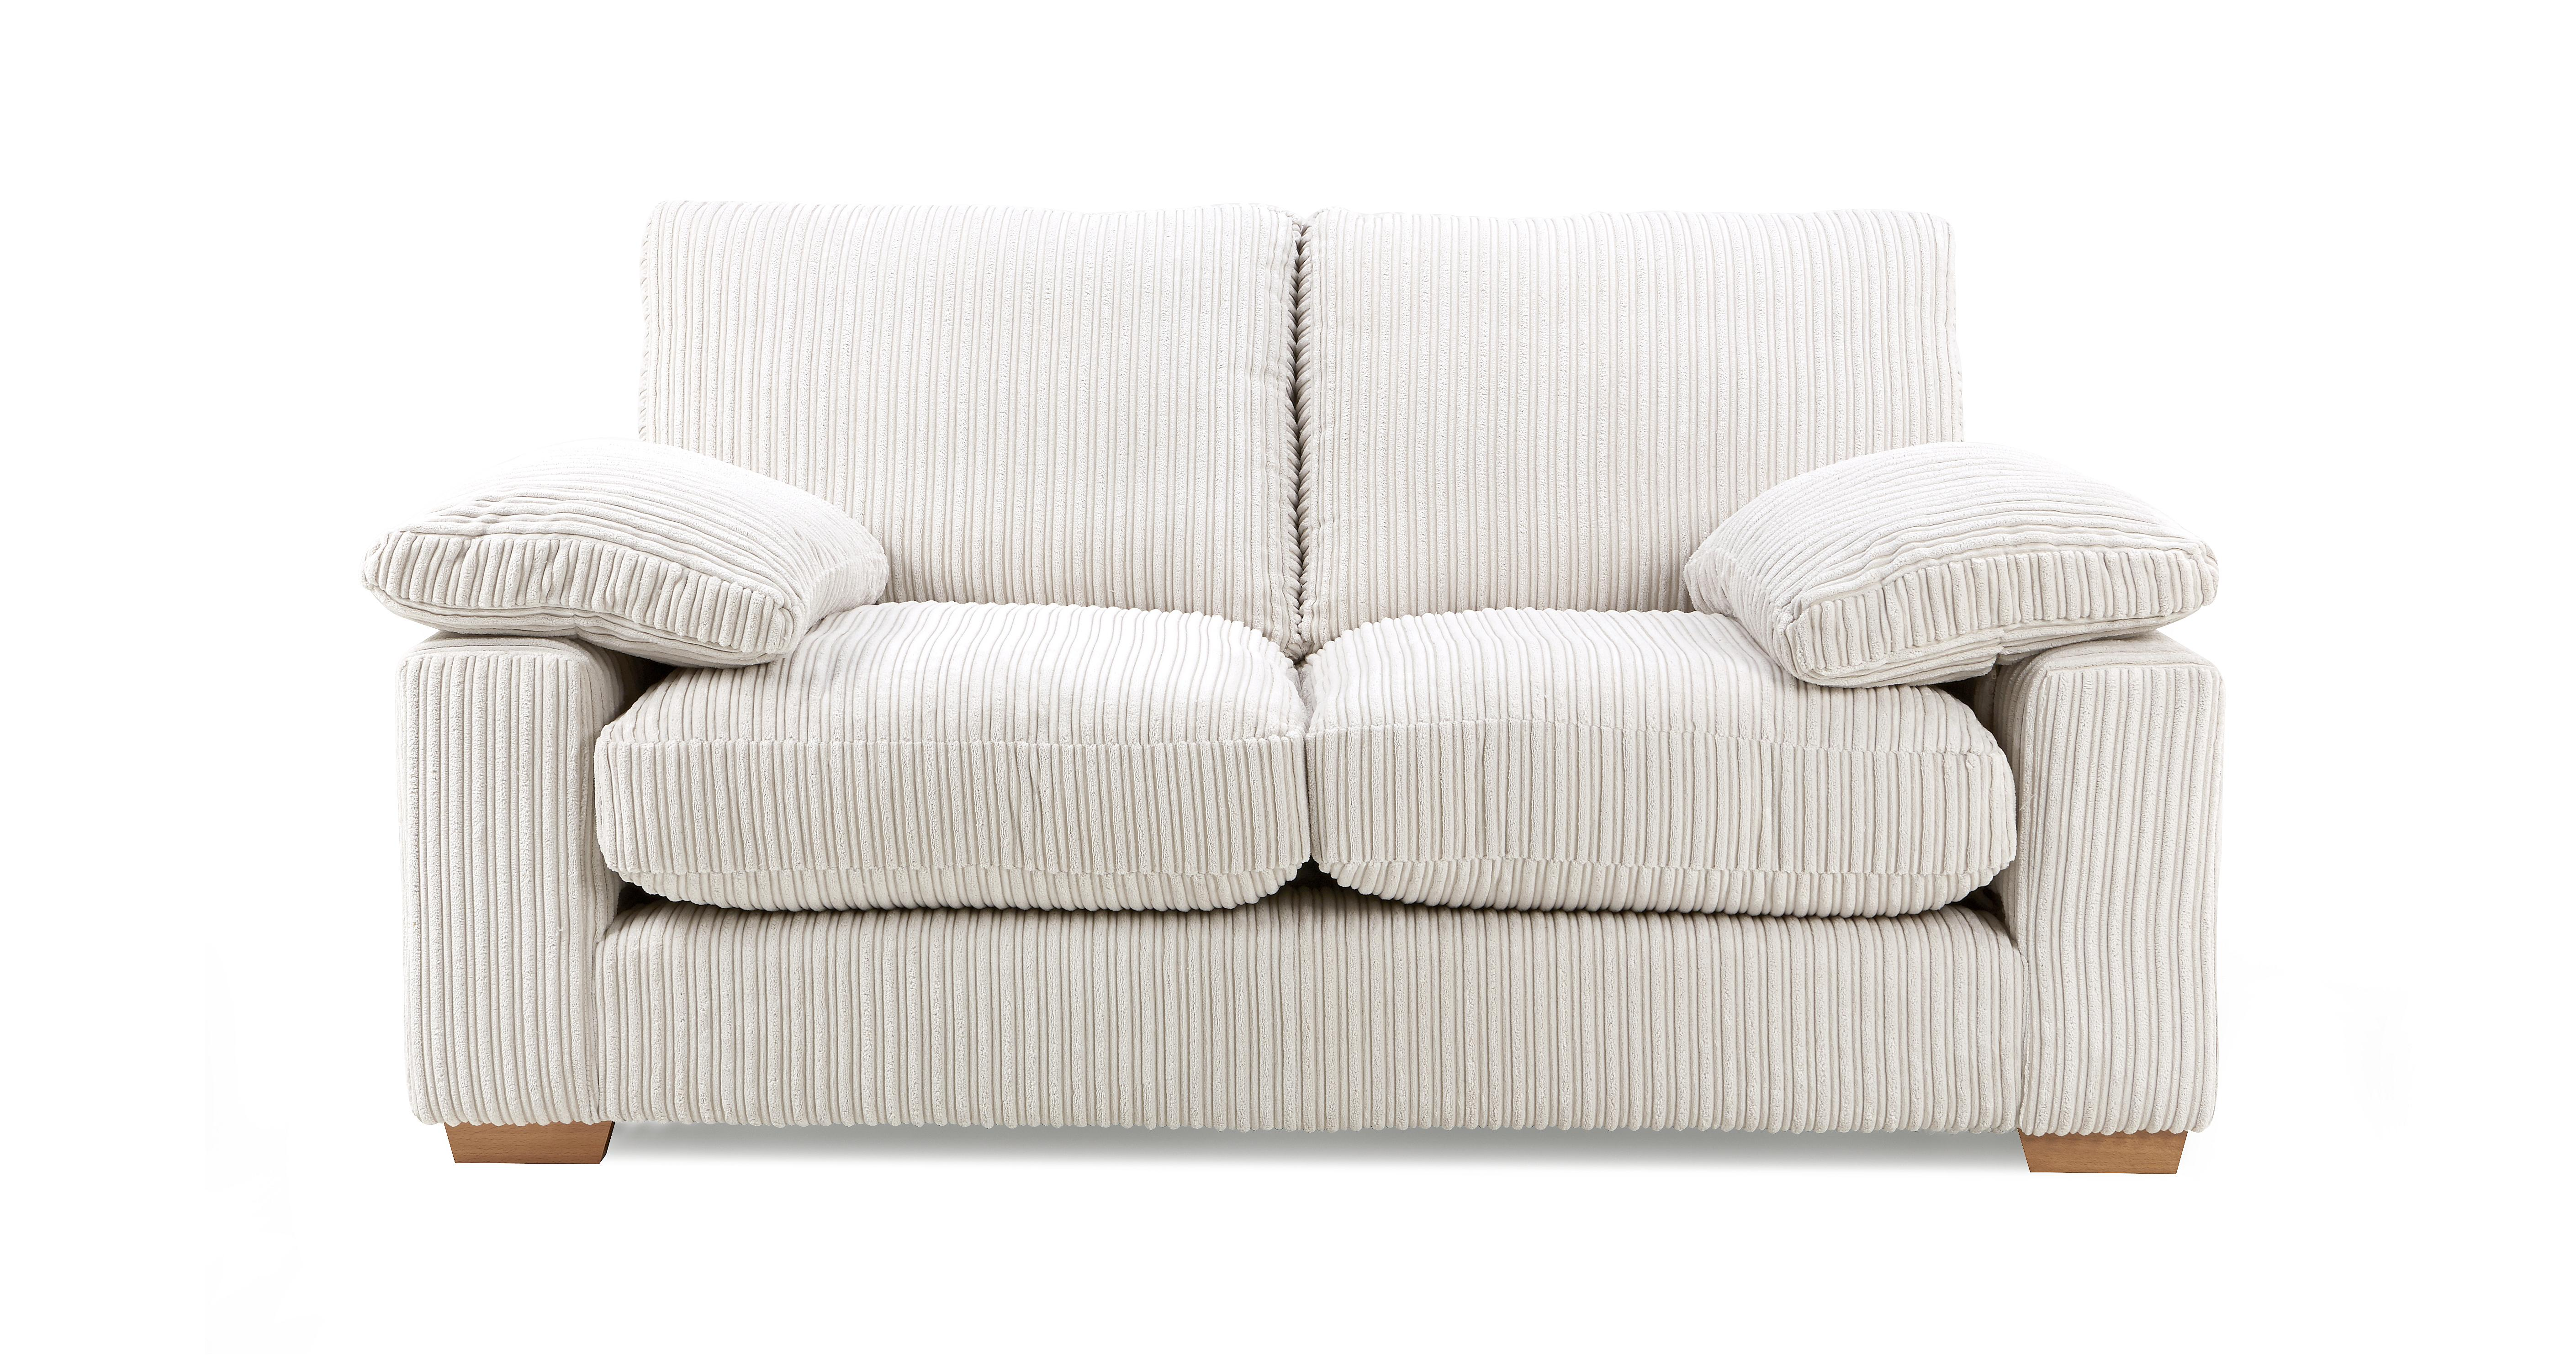 Prime Crosby 2 Seater Sofa Caraccident5 Cool Chair Designs And Ideas Caraccident5Info